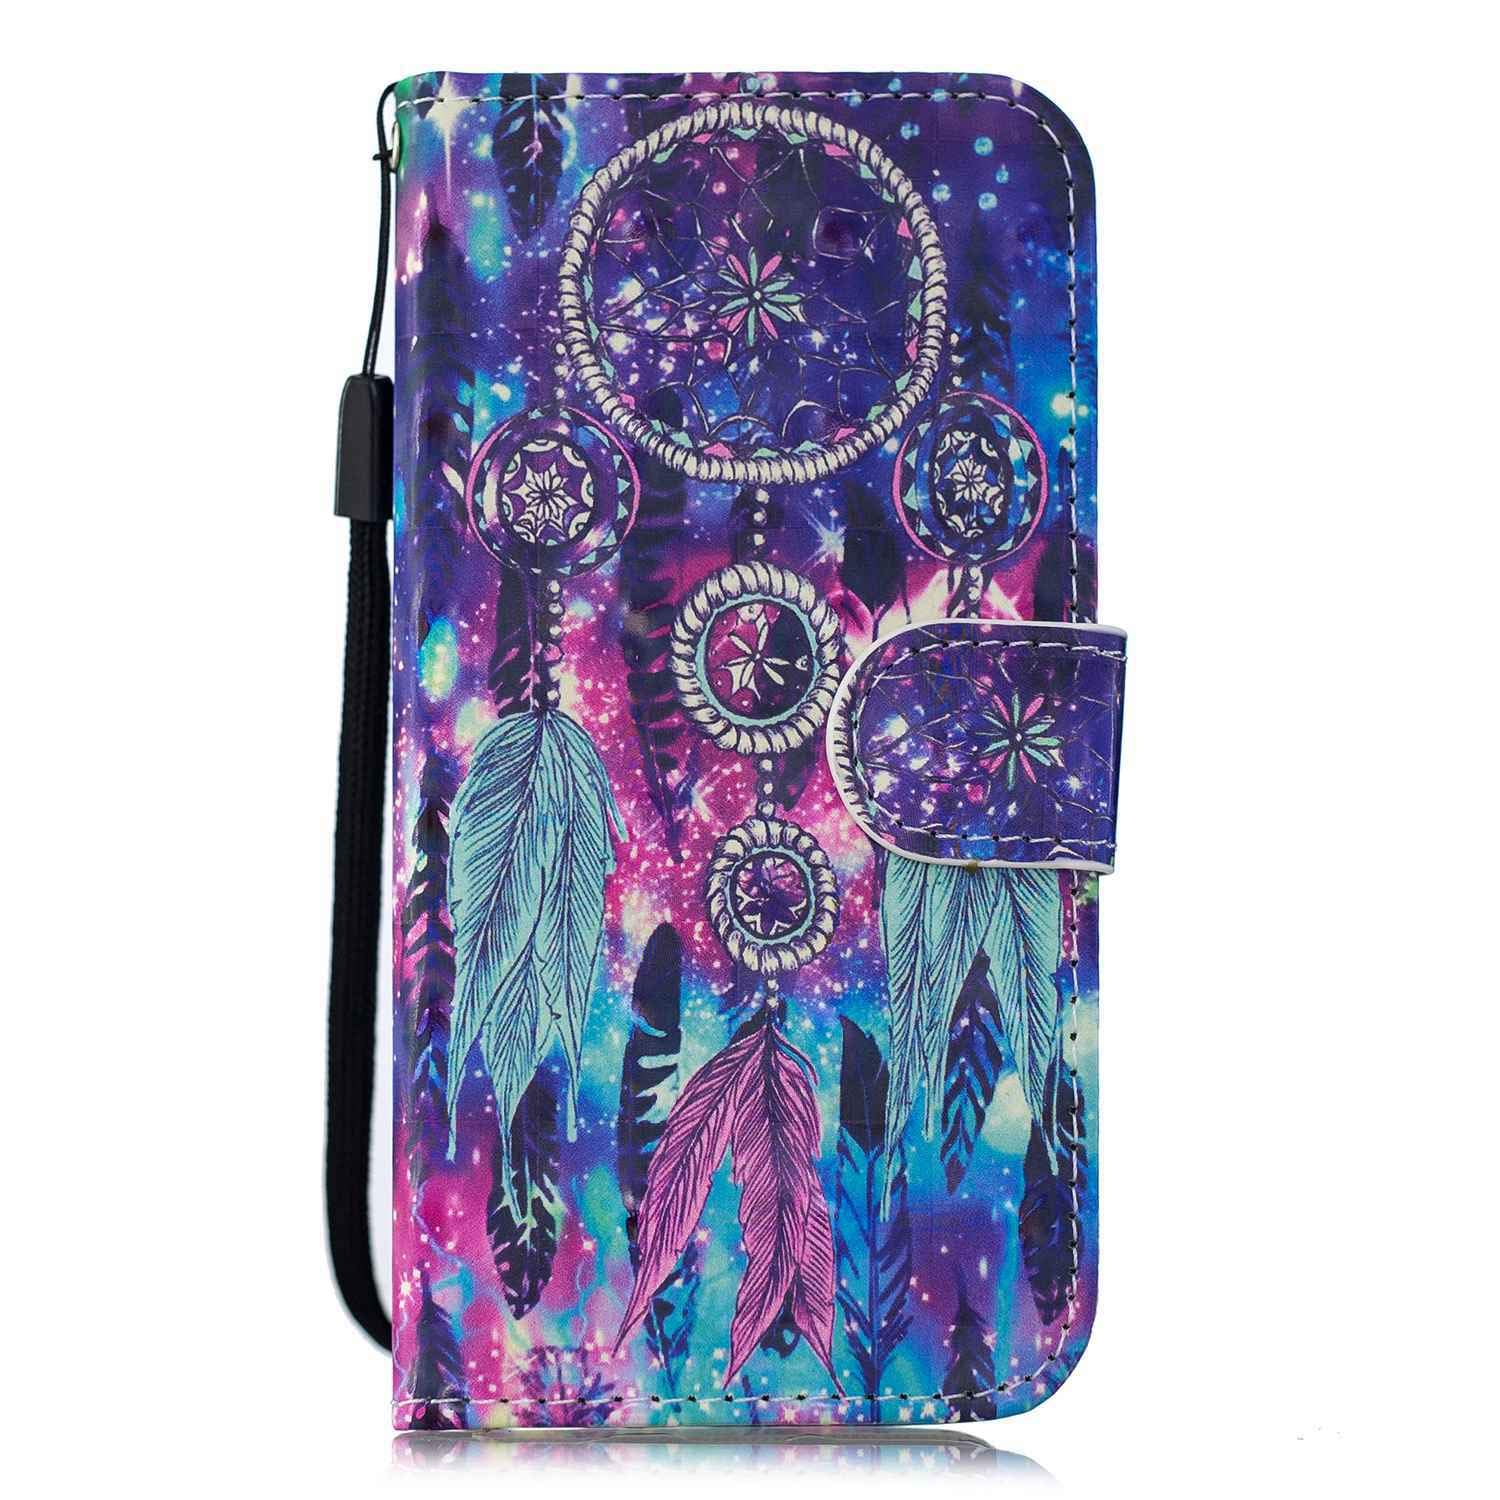 Reevermap Samsung Galaxy A10 Case Leather 3D Cover Shockproof Flip Wallet Card Slots Premium Kickstand Notebook Magnetic Closure for Samsung Galaxy A10 Colorful Feather